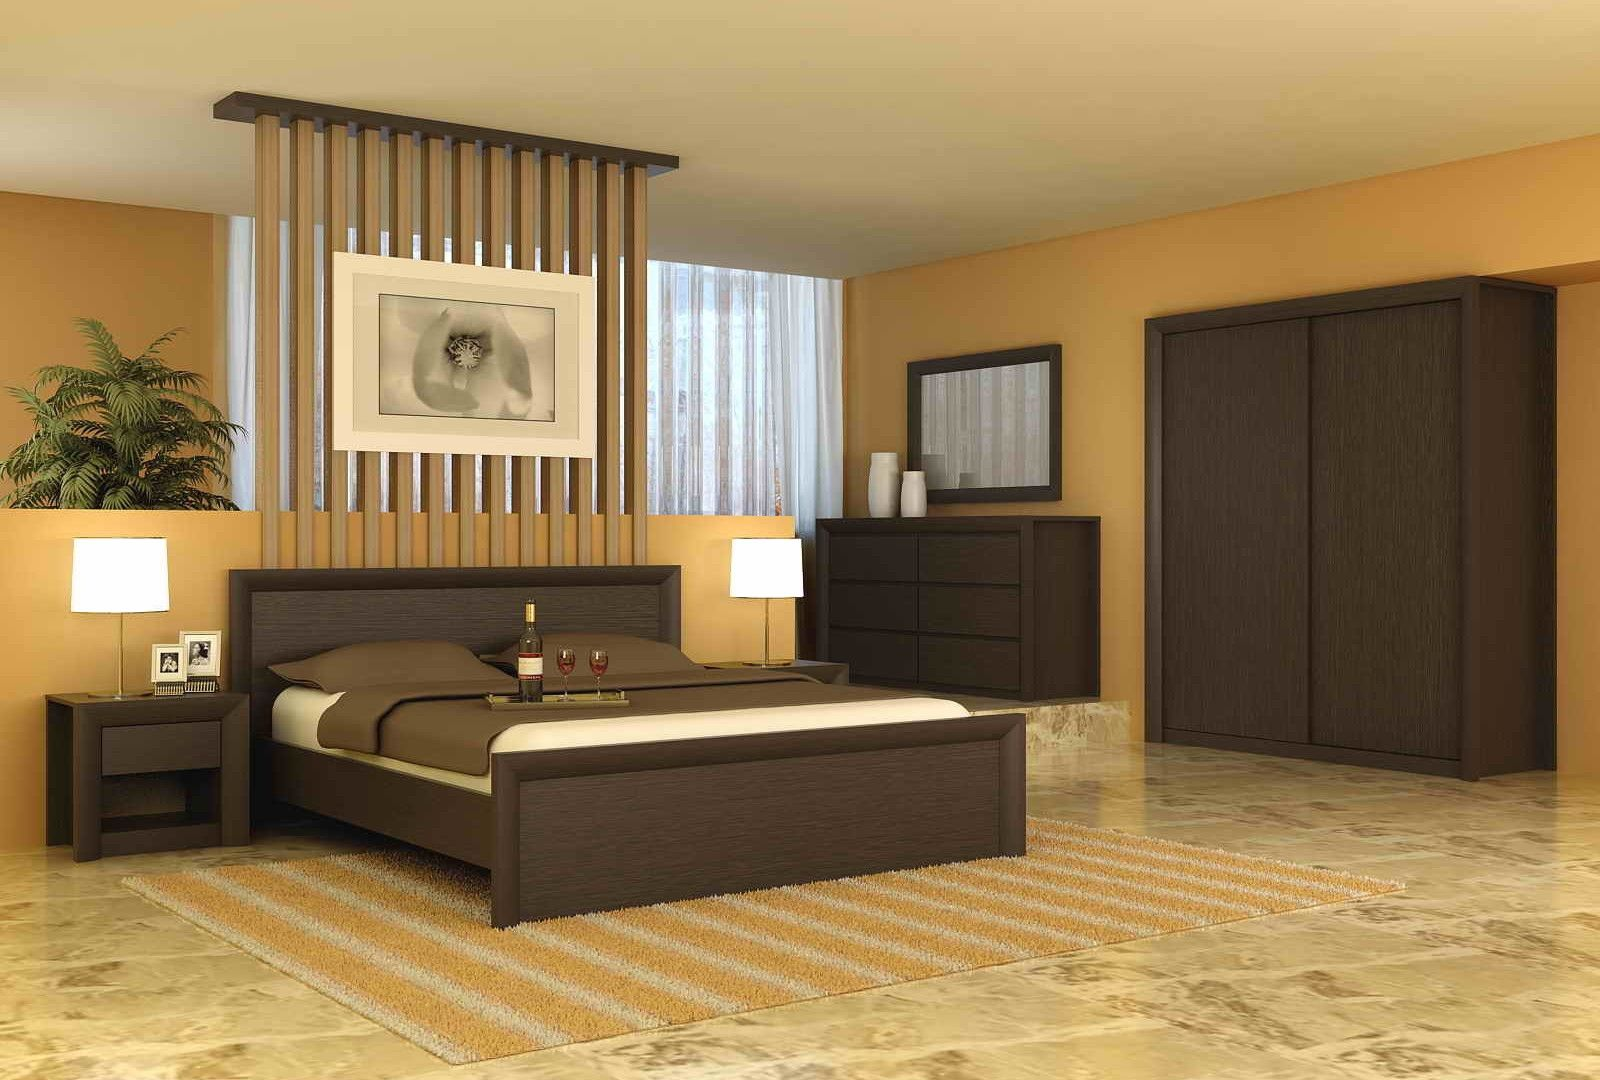 Simple Bedroom Wall Wardrobe Design Simple Modern Bedroom. Modern Roofing Designs. Flat Roof Style Idea Feat Modern Architecture Home Design Featured. Redford Display Home Opens This Weekend Celebration Homes